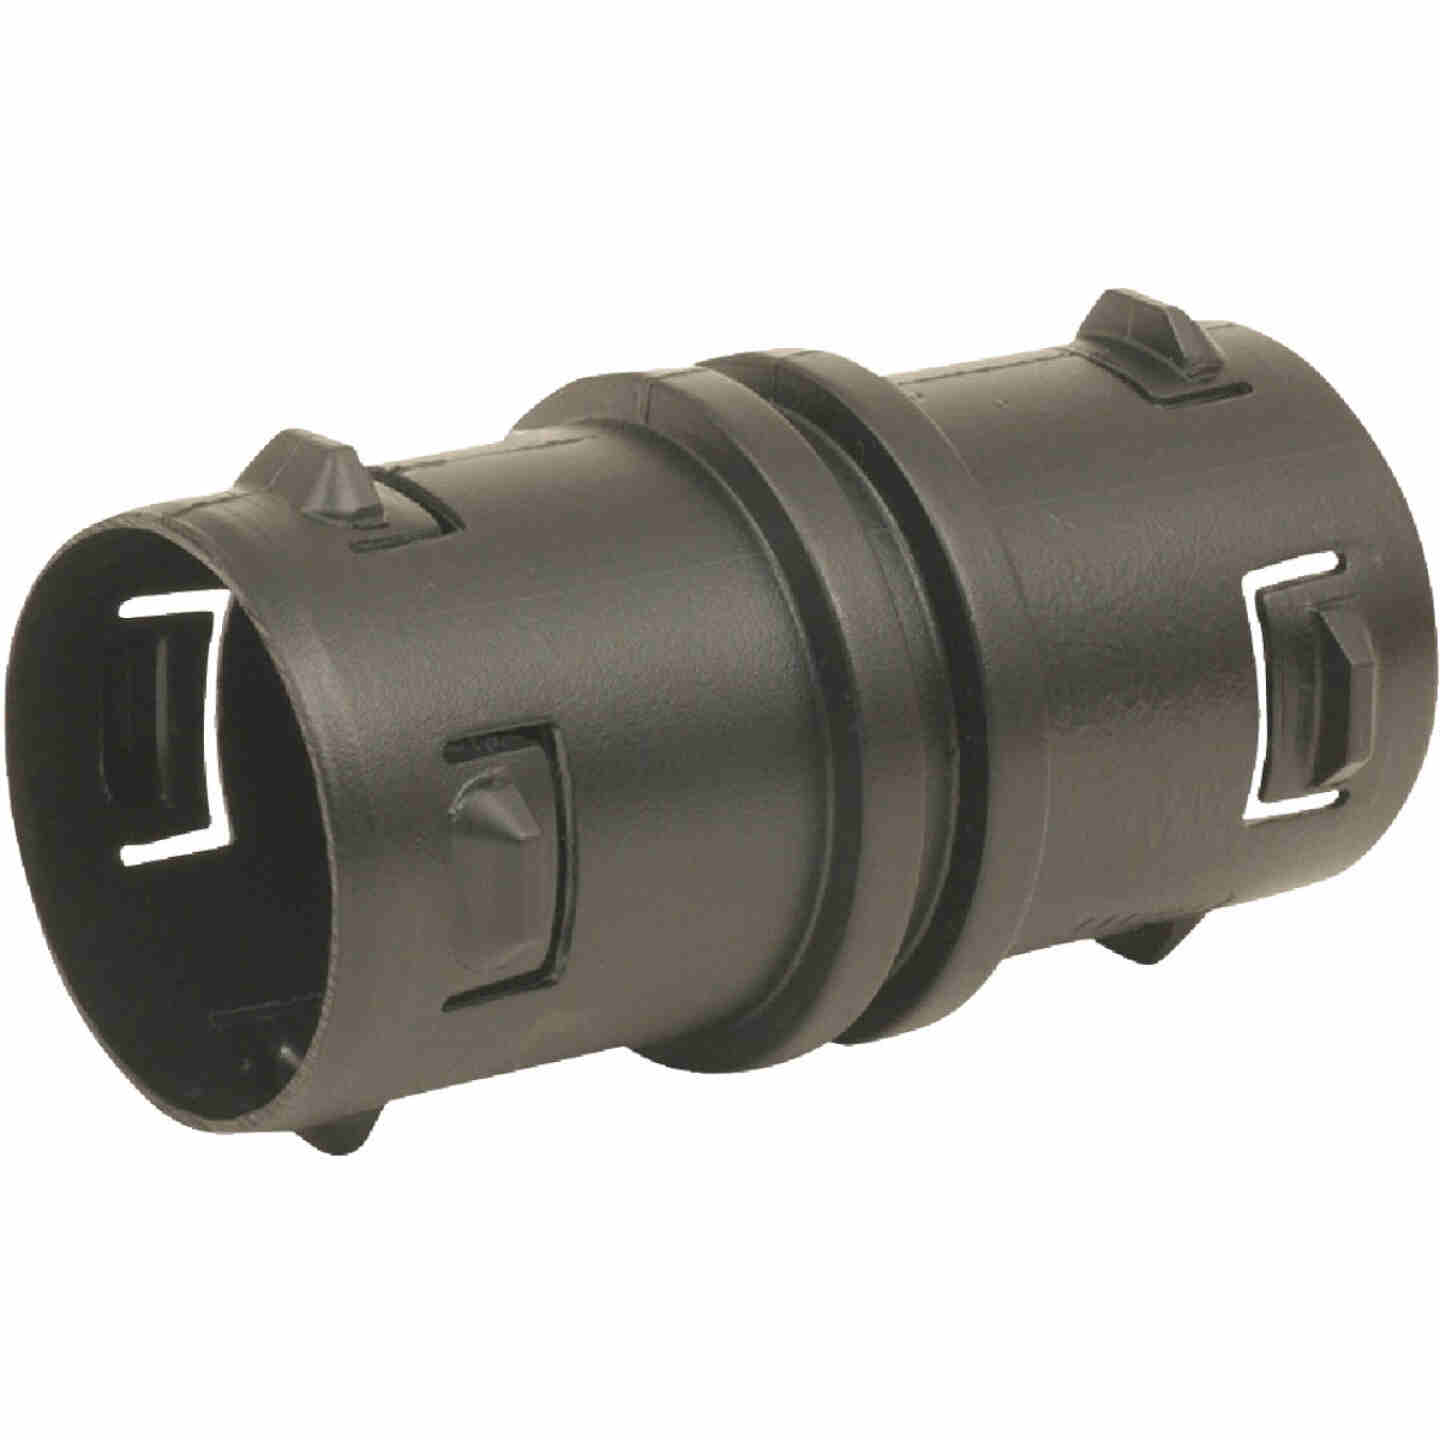 Advanced Drainage Systems 3 In. x 6 In. Polyethylene Internal Corrugated Coupling Image 1